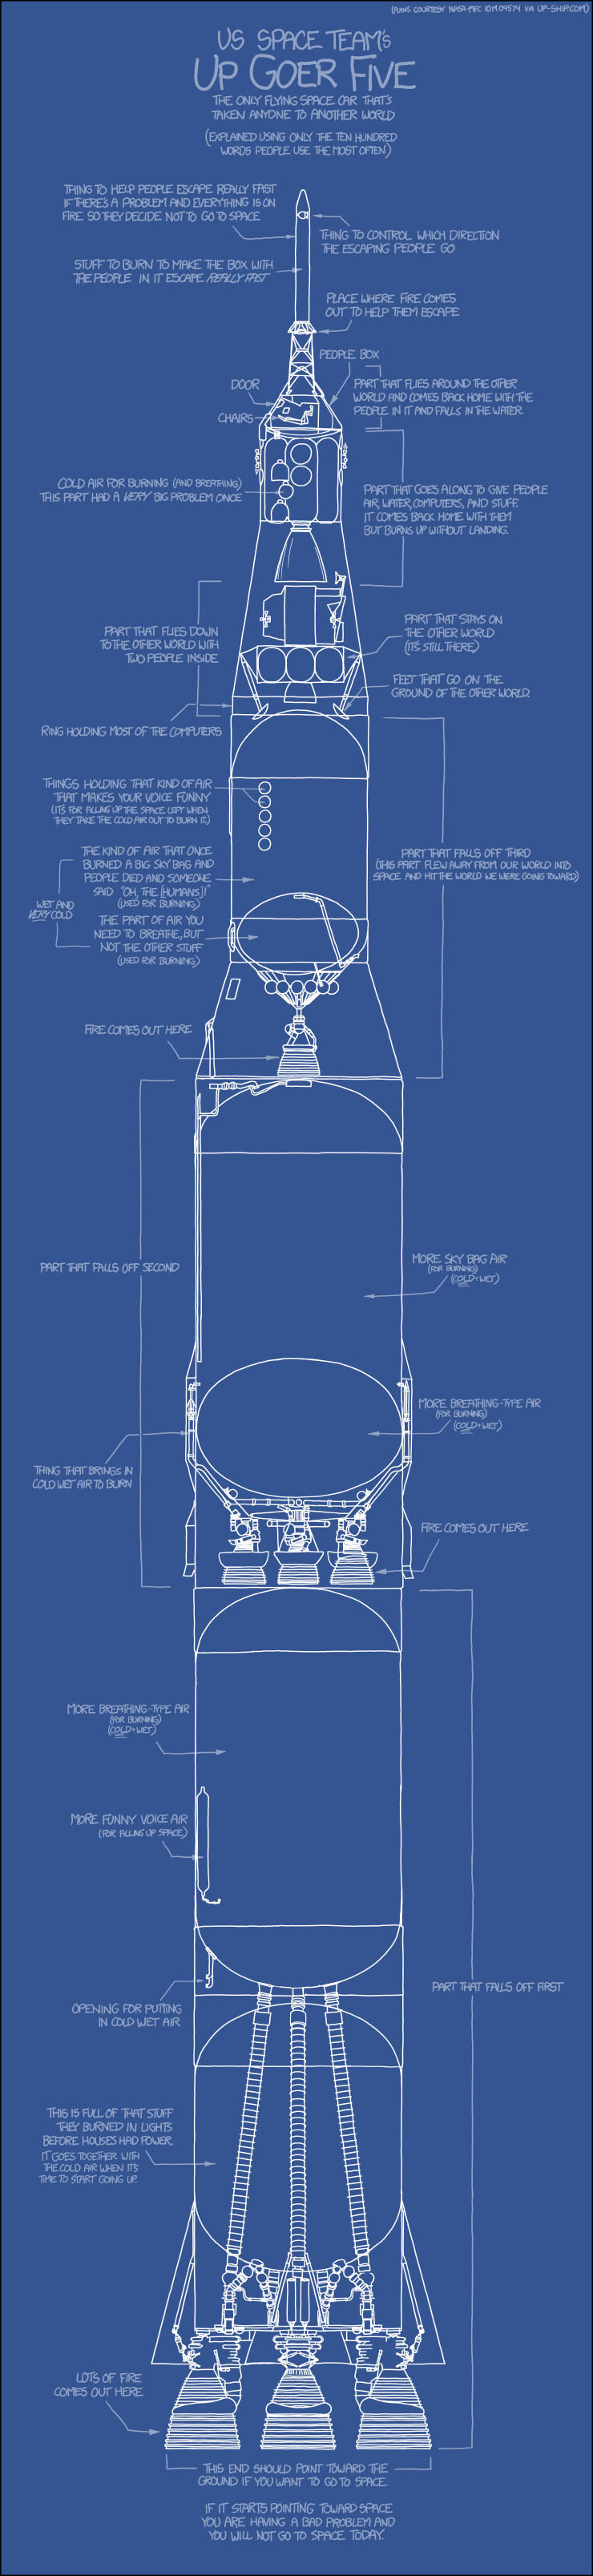 """Blueprint of rocket, labeled using silly-sounding simplistic language such as """"fire comes out here"""""""